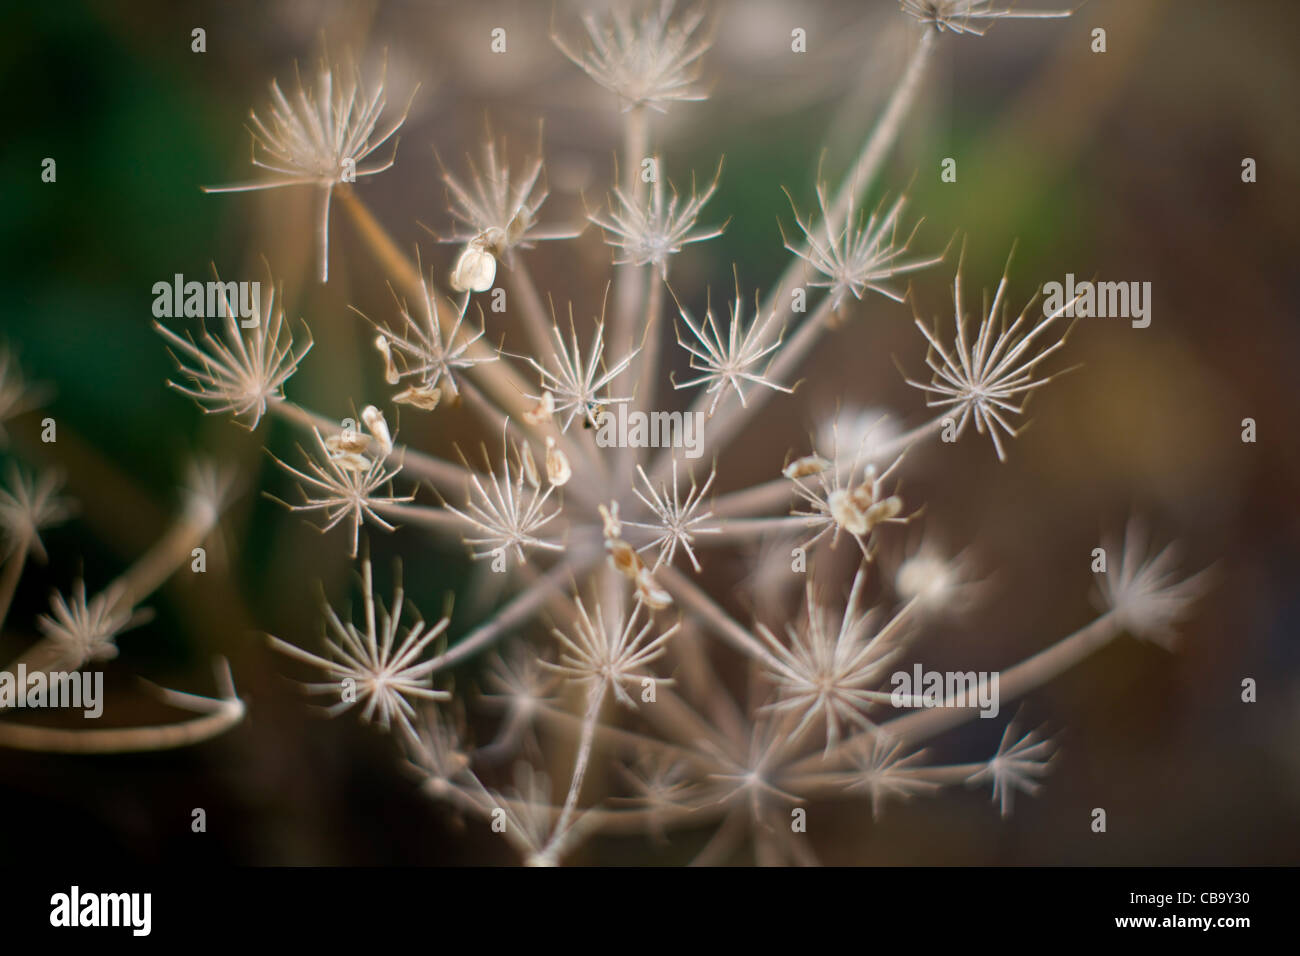 Flowerless Cow Parsley - Stock Image